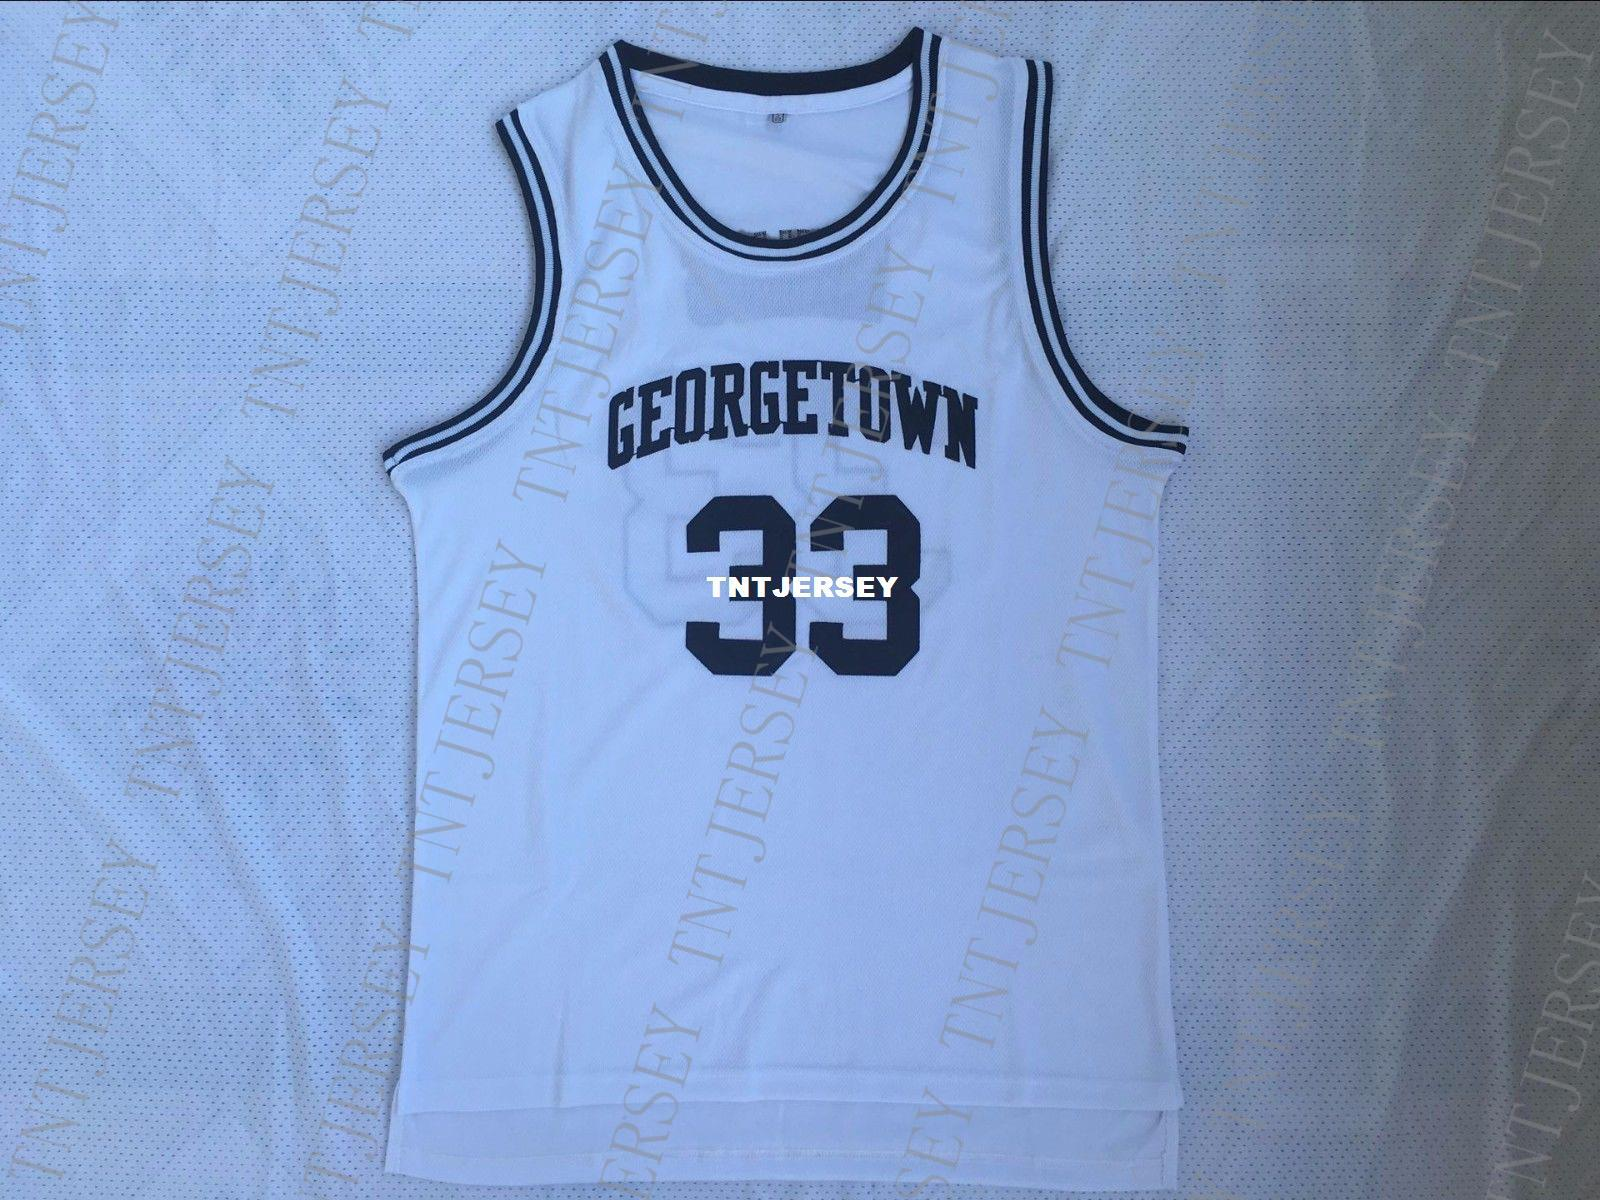 best sneakers dc9ce 39baa Cheap custom Vintage Patrick Ewing #33 Georgetown Hoyas College Jersey  White Stitched Customize any number name MEN WOMEN YOUTH XS-5XL